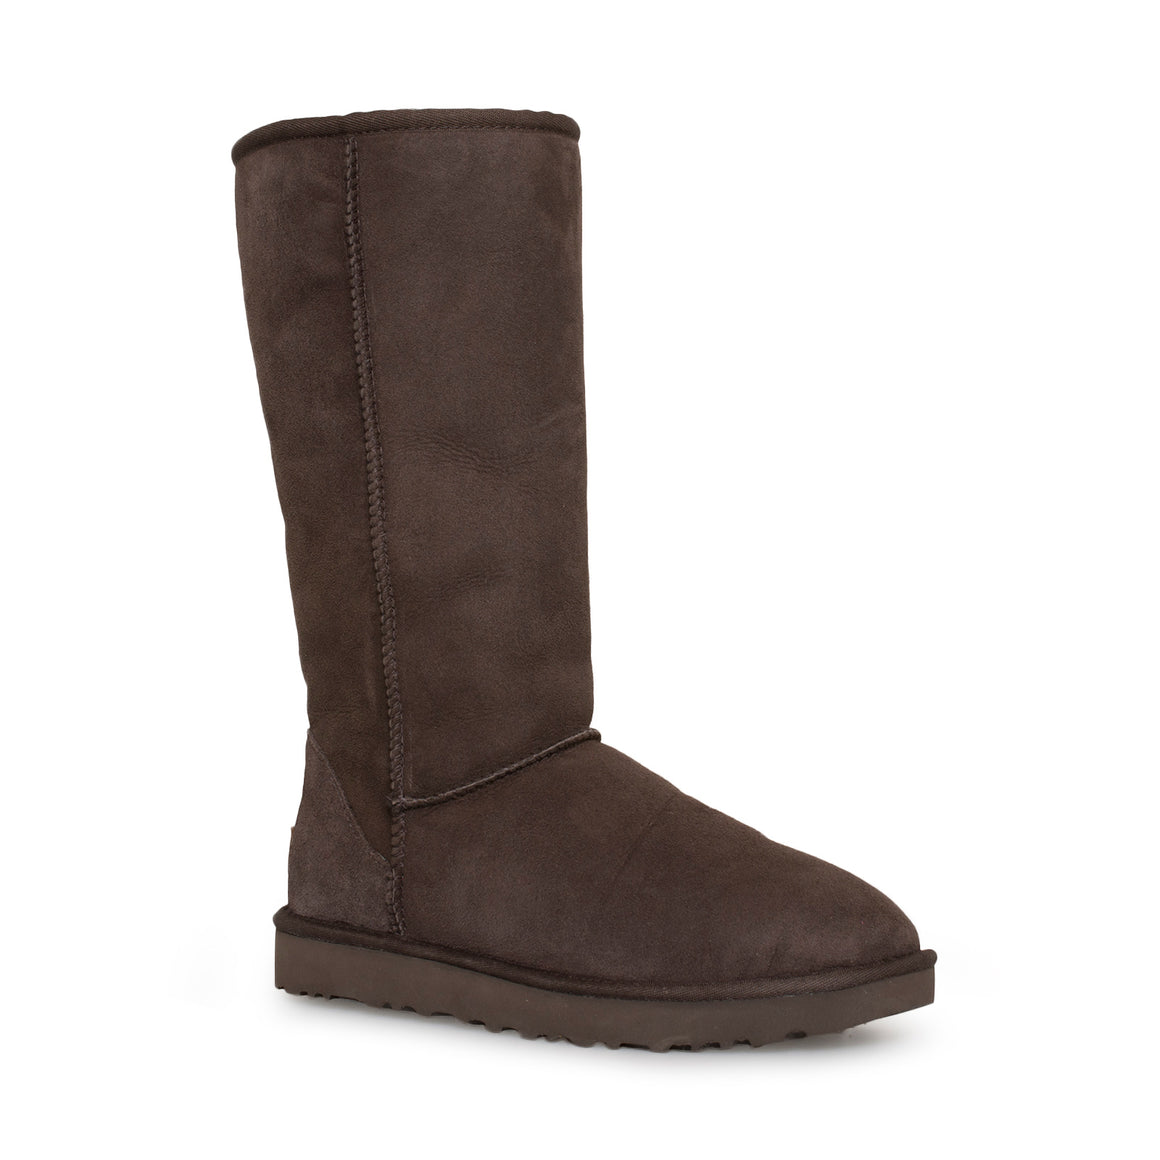 UGG Classic Tall II Chocolate Boots - Women's